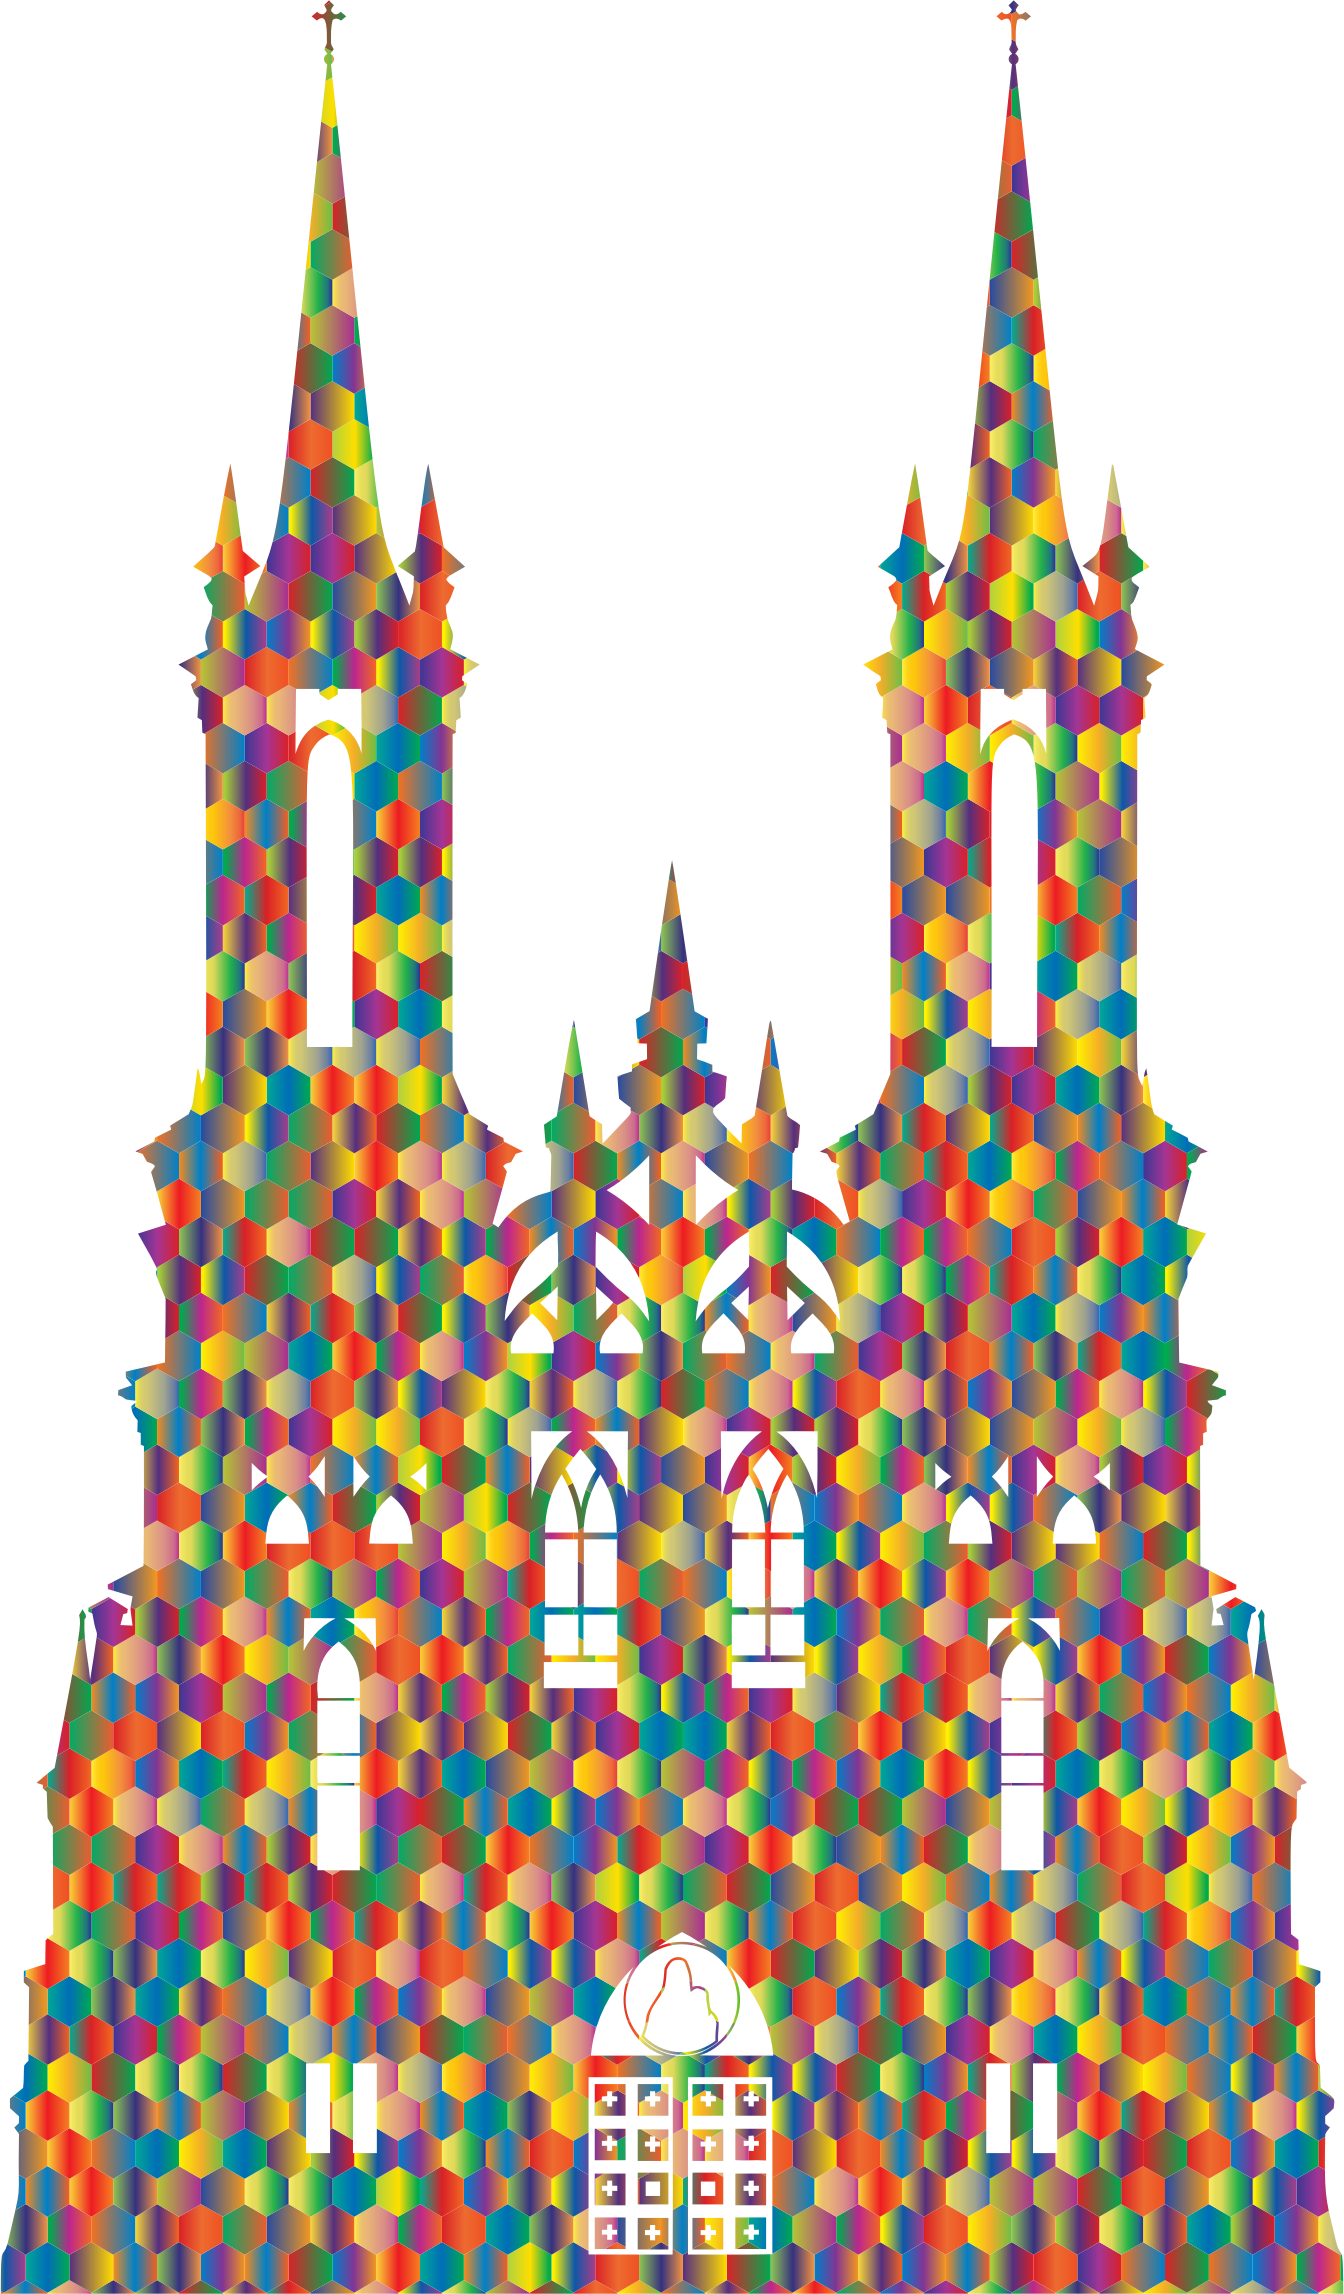 Polyprismatic Hexagonal Mosaic Gothic Castle Silhouette by GDJ